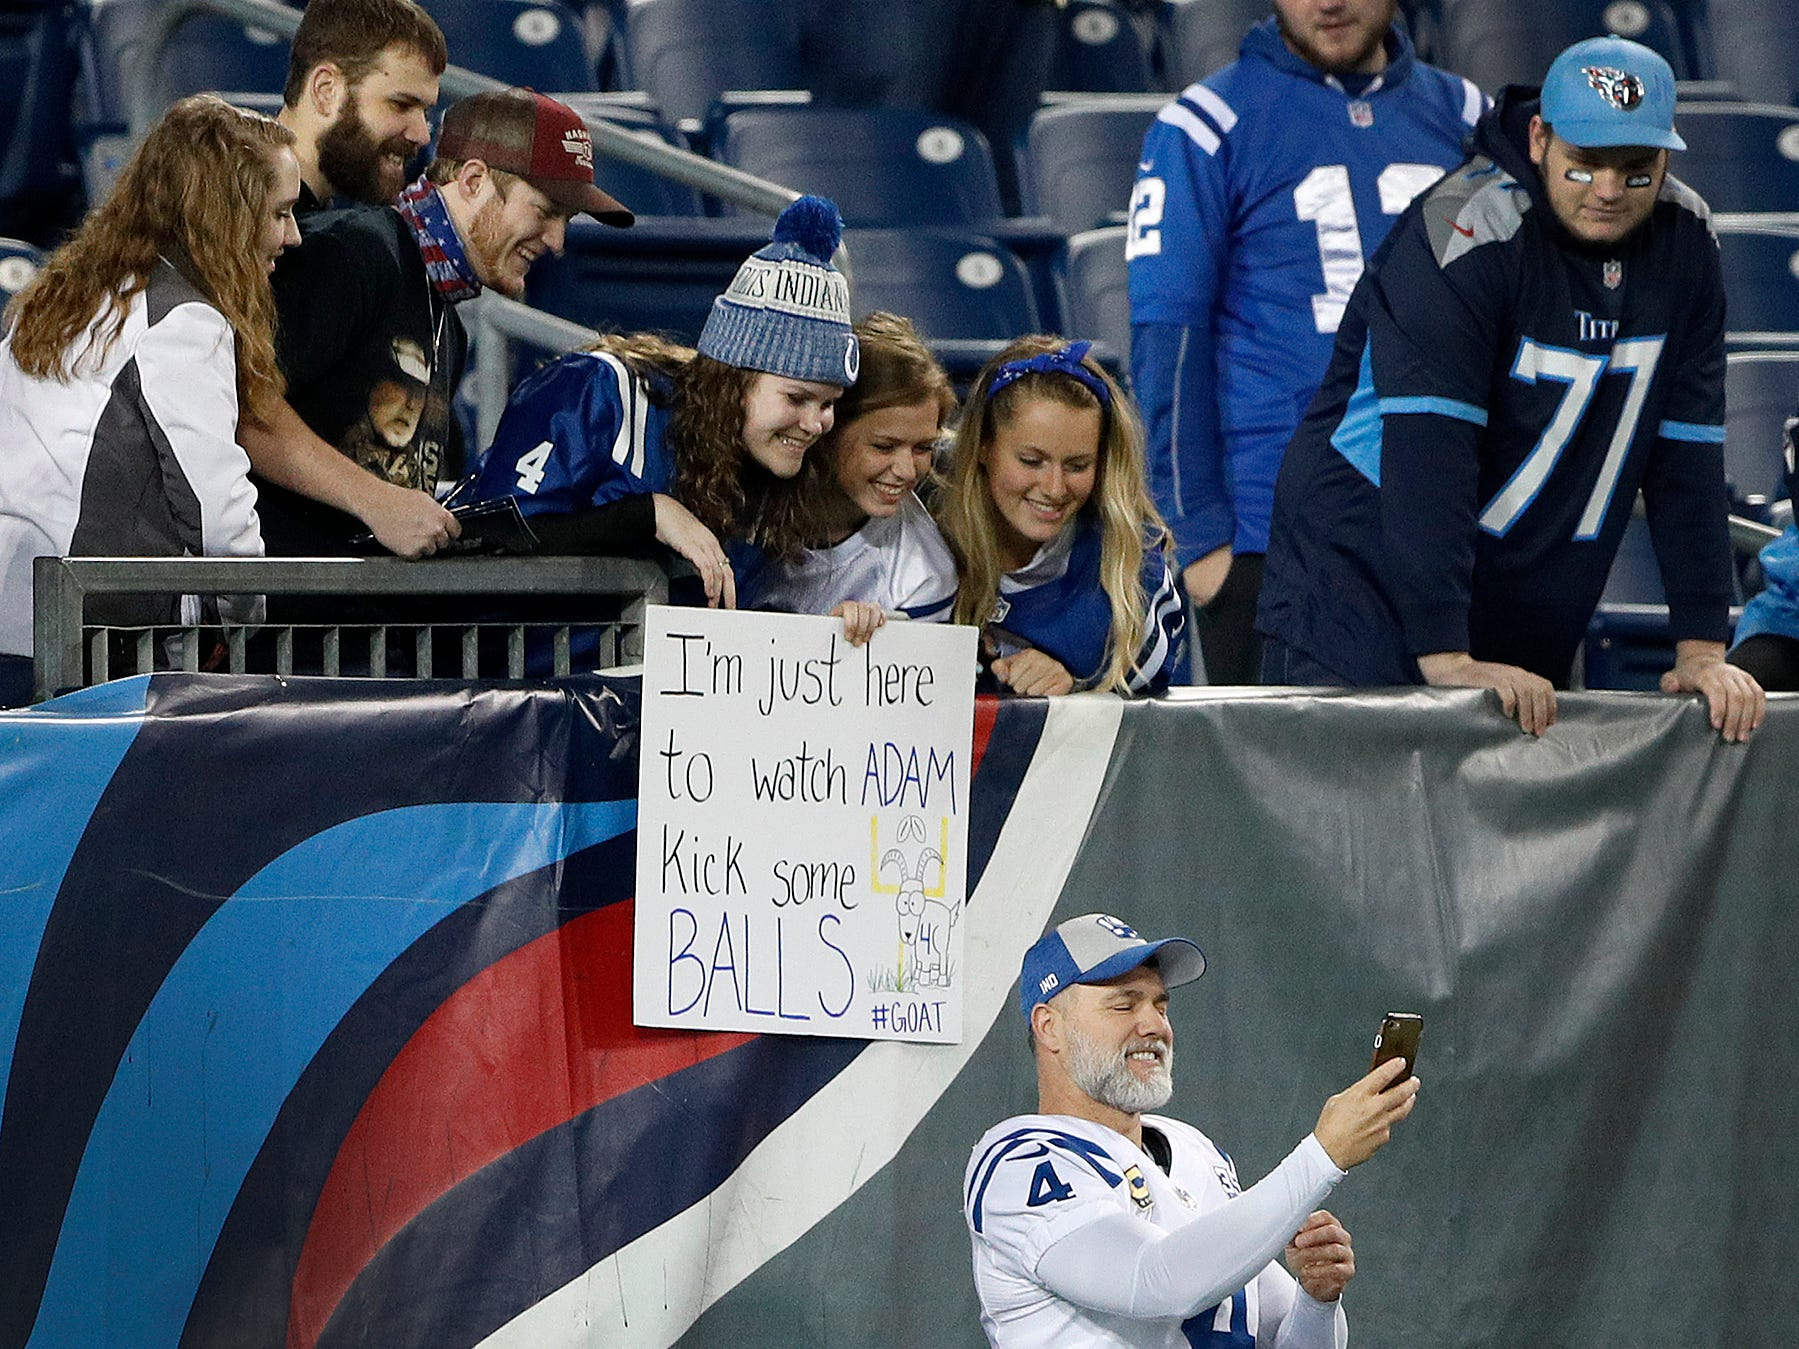 Indianapolis Colts kicker Adam Vinatieri (4) takes a selfie with some fans before the start of their game against the Tennessee Titans at Nissan Stadium in Nashville, Tenn., on Sunday, Dec. 30, 2018.